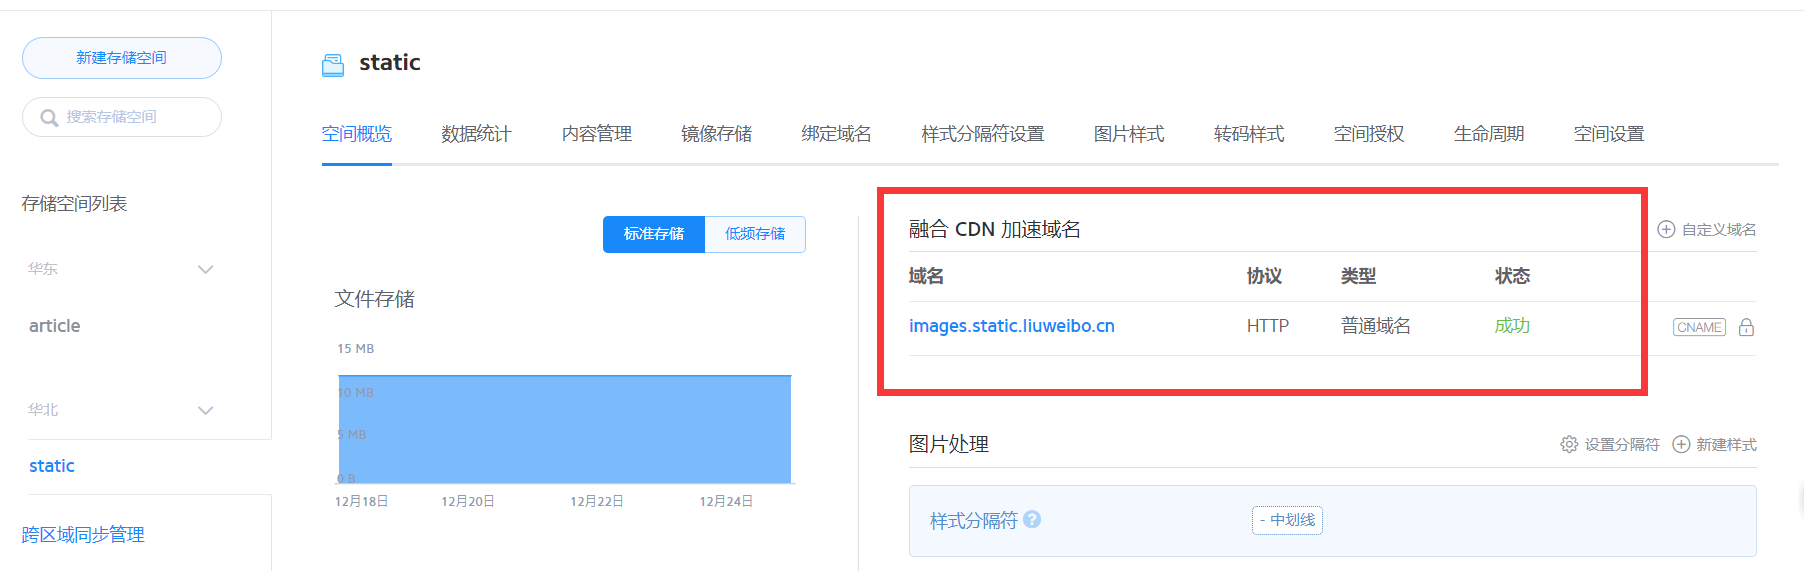 http://images.liuweibo.cn/image/common/新建cdn域名_1545724525766_66371_1545724545504.png